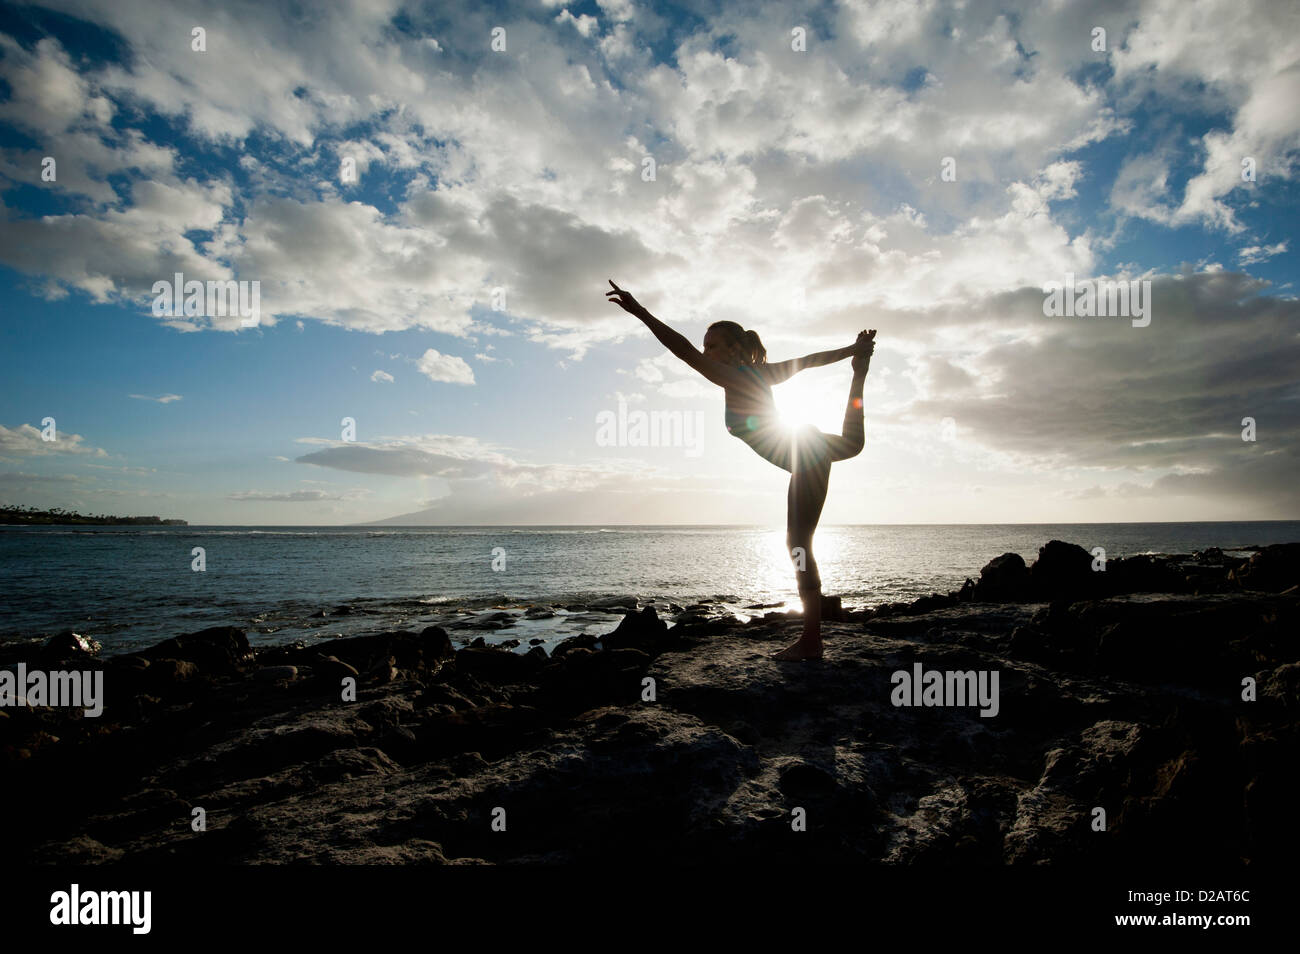 Woman practicing yoga on rock formation Photo Stock